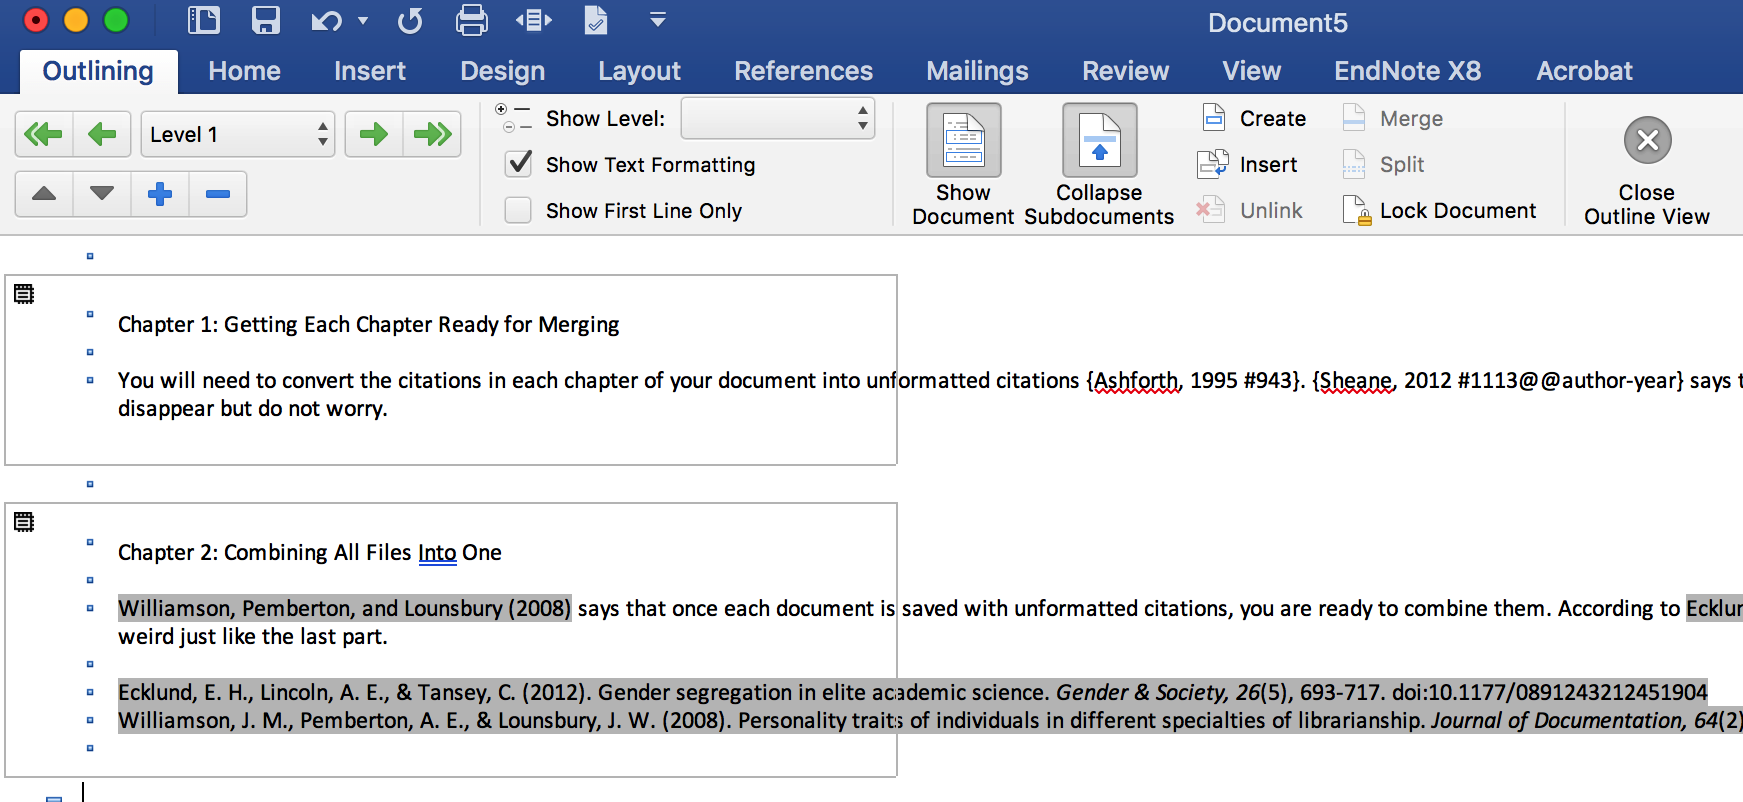 All documents inserted into new Word document